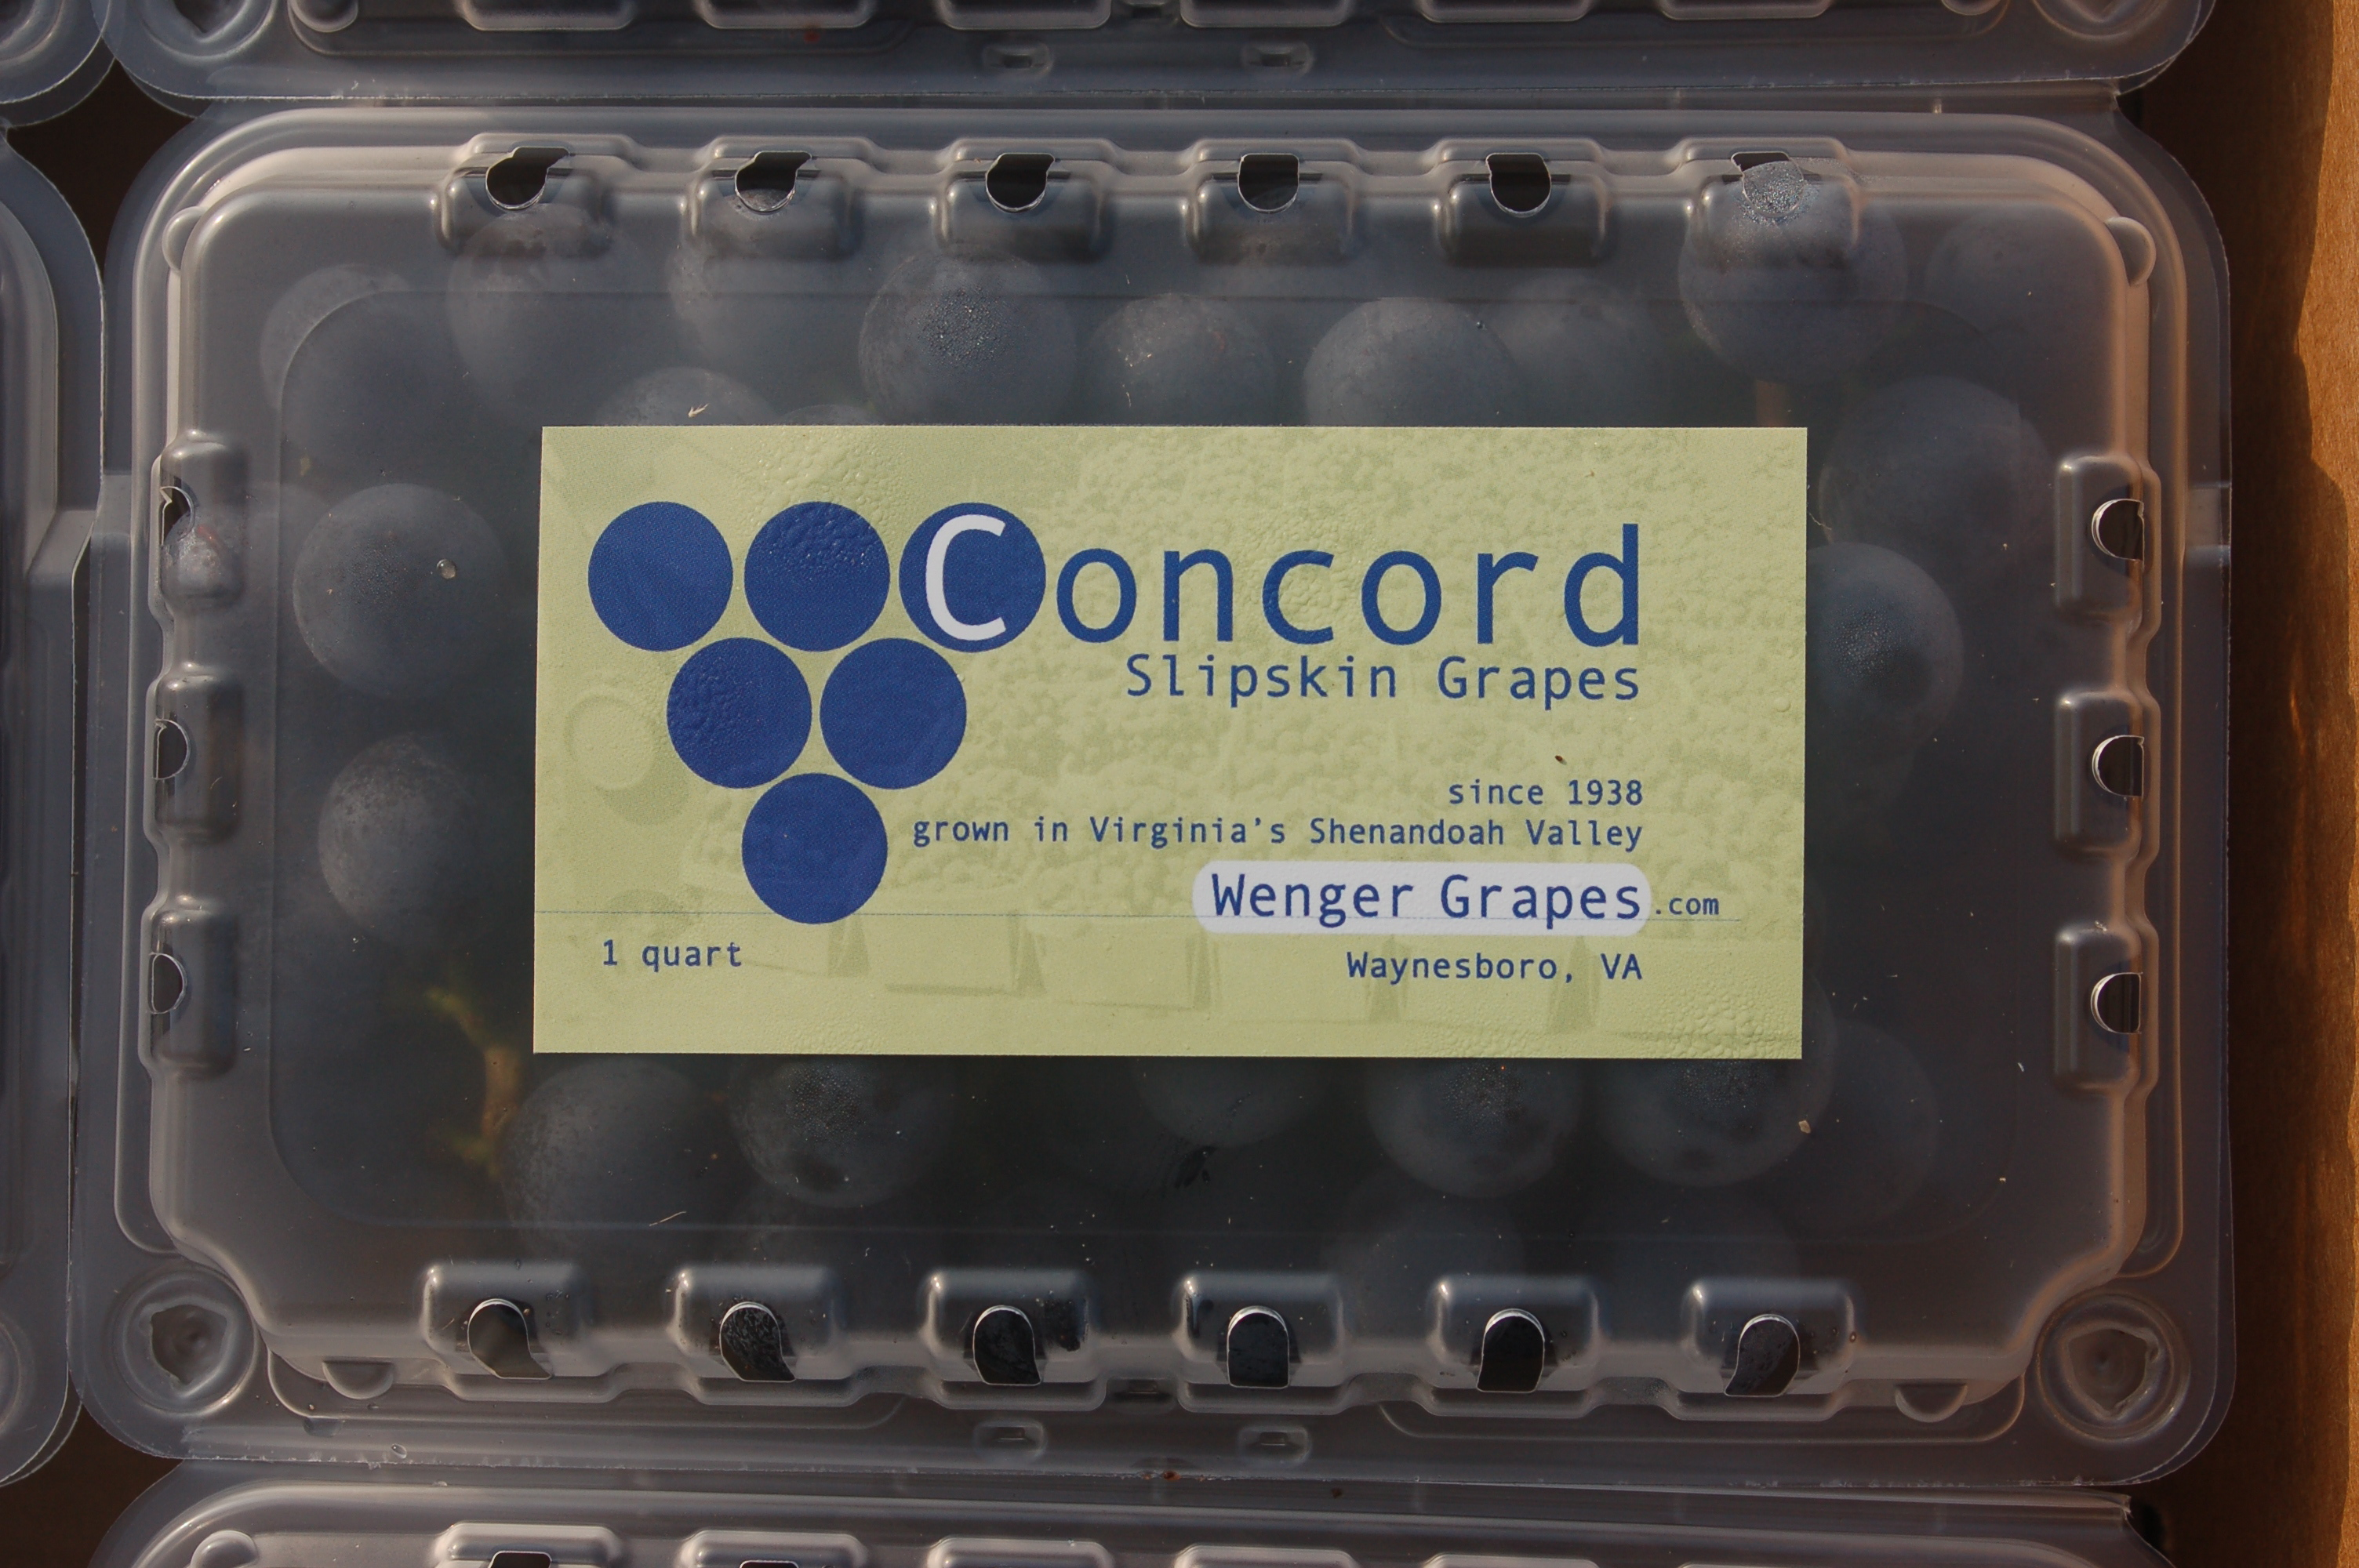 Wenger concord grapes ready for market. 1 quart clamshell. Slipskin grapes grown in Viginia's Shenandoah Valley